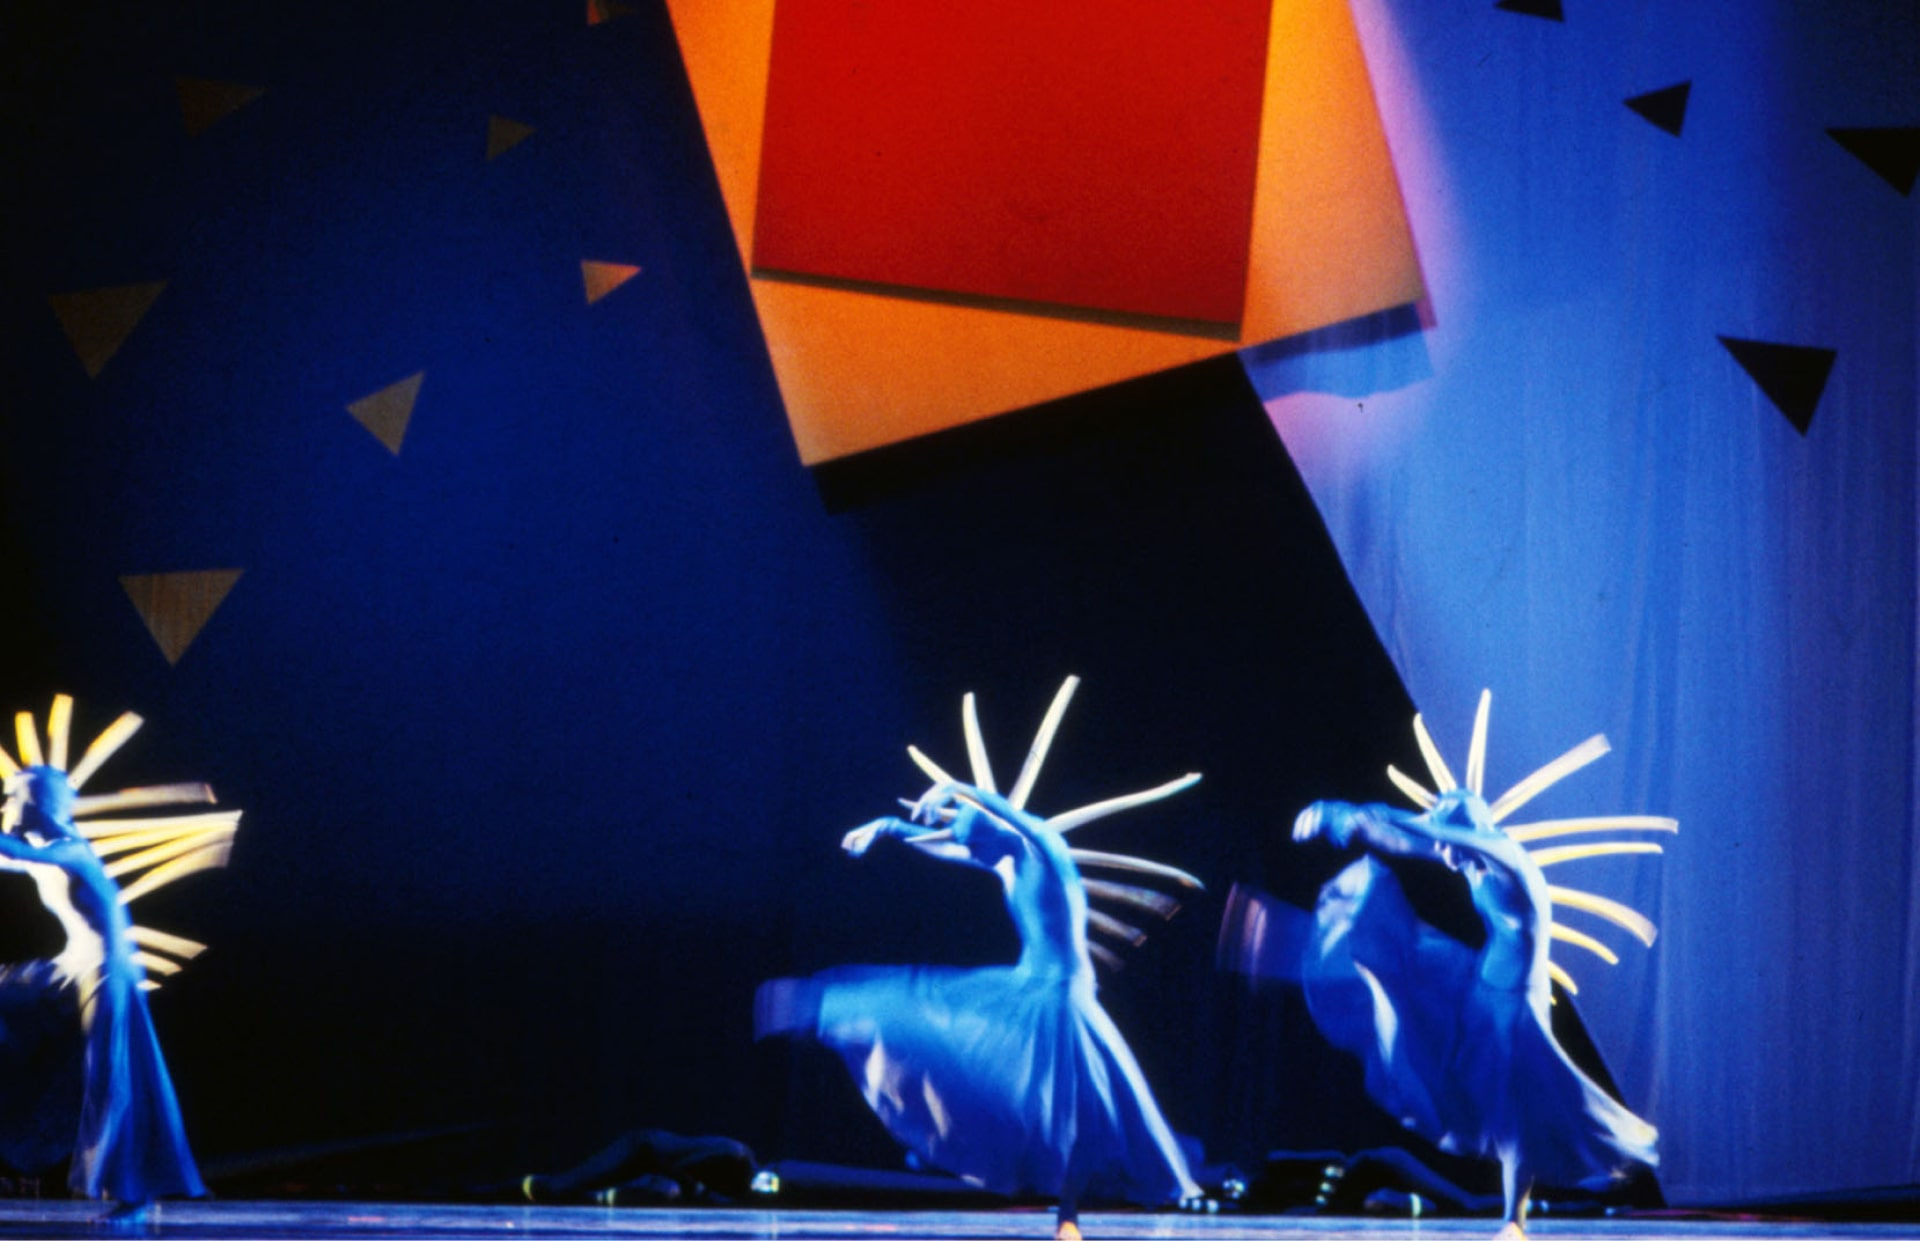 Three blue-garbed dancers with yellow spine spikes gyrate against brightly coloured geometric background.